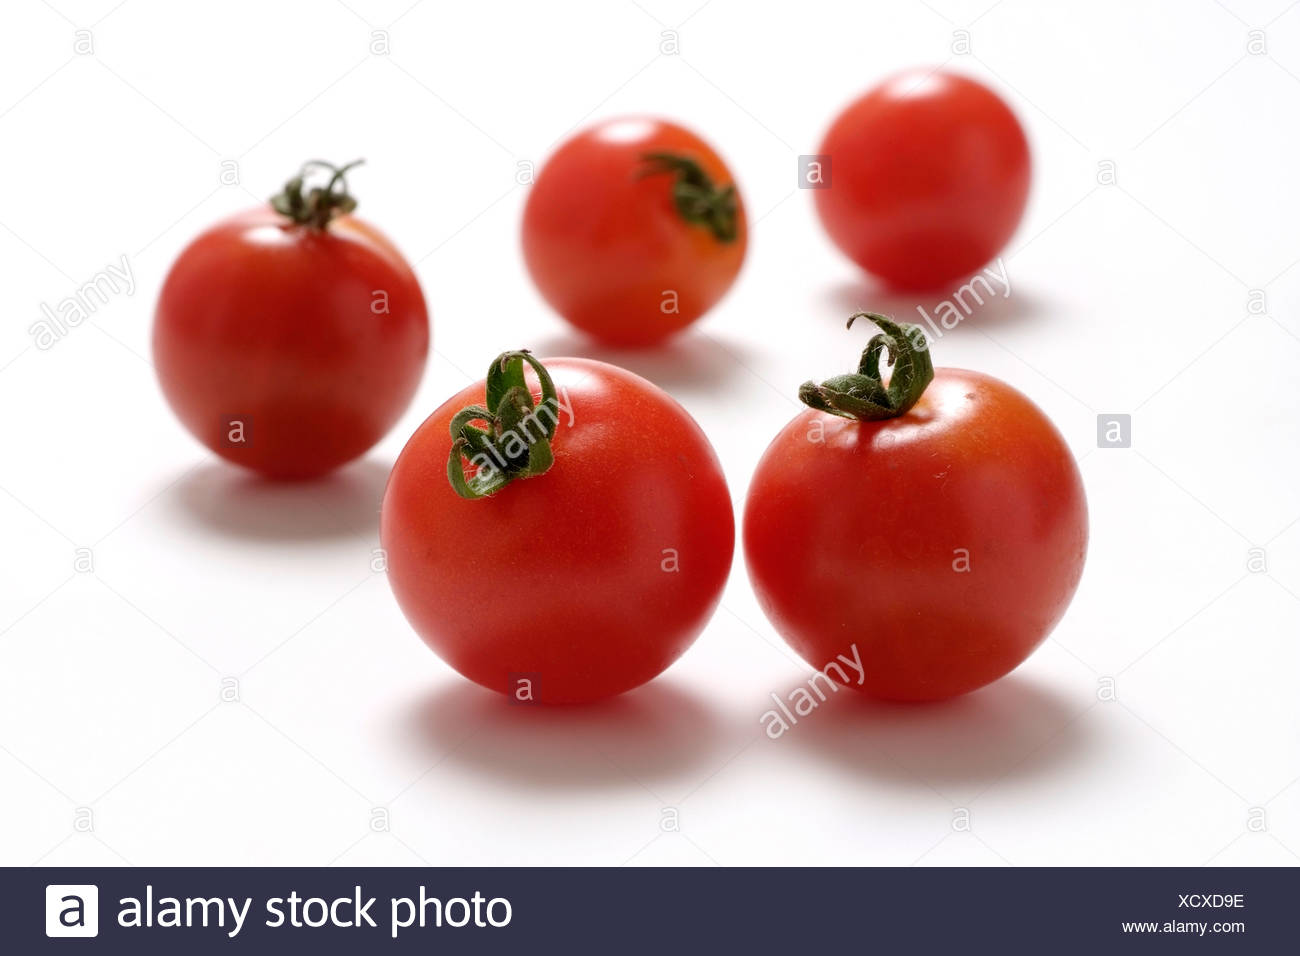 Tomato varieties: Supersweet - Stock Image